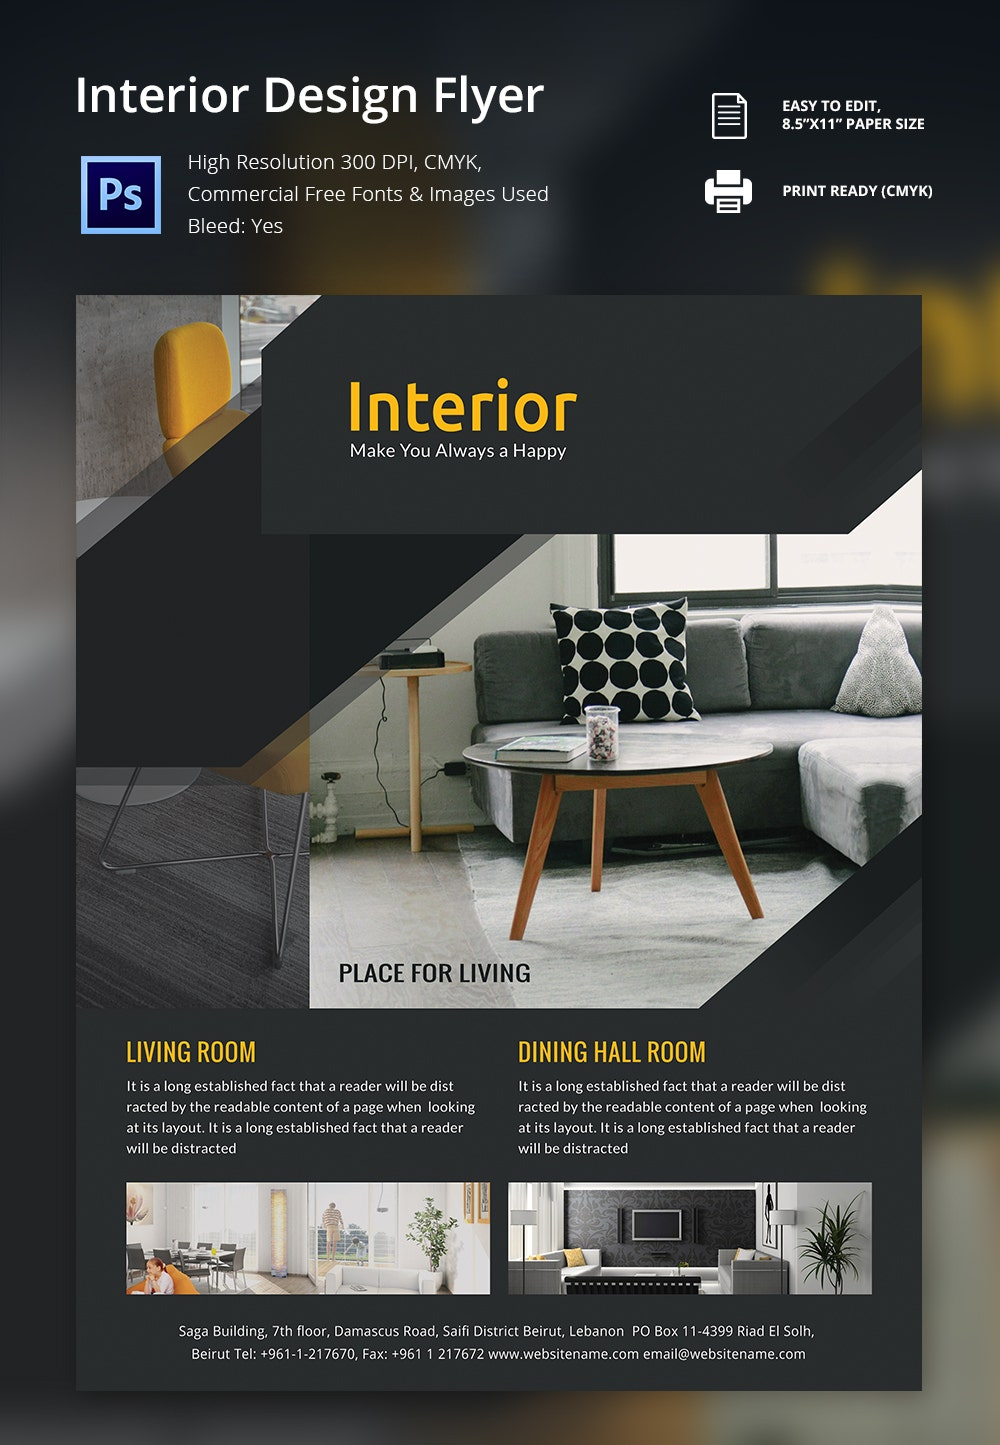 Interior design flyer template 25 free psd ai vector for Design your interior